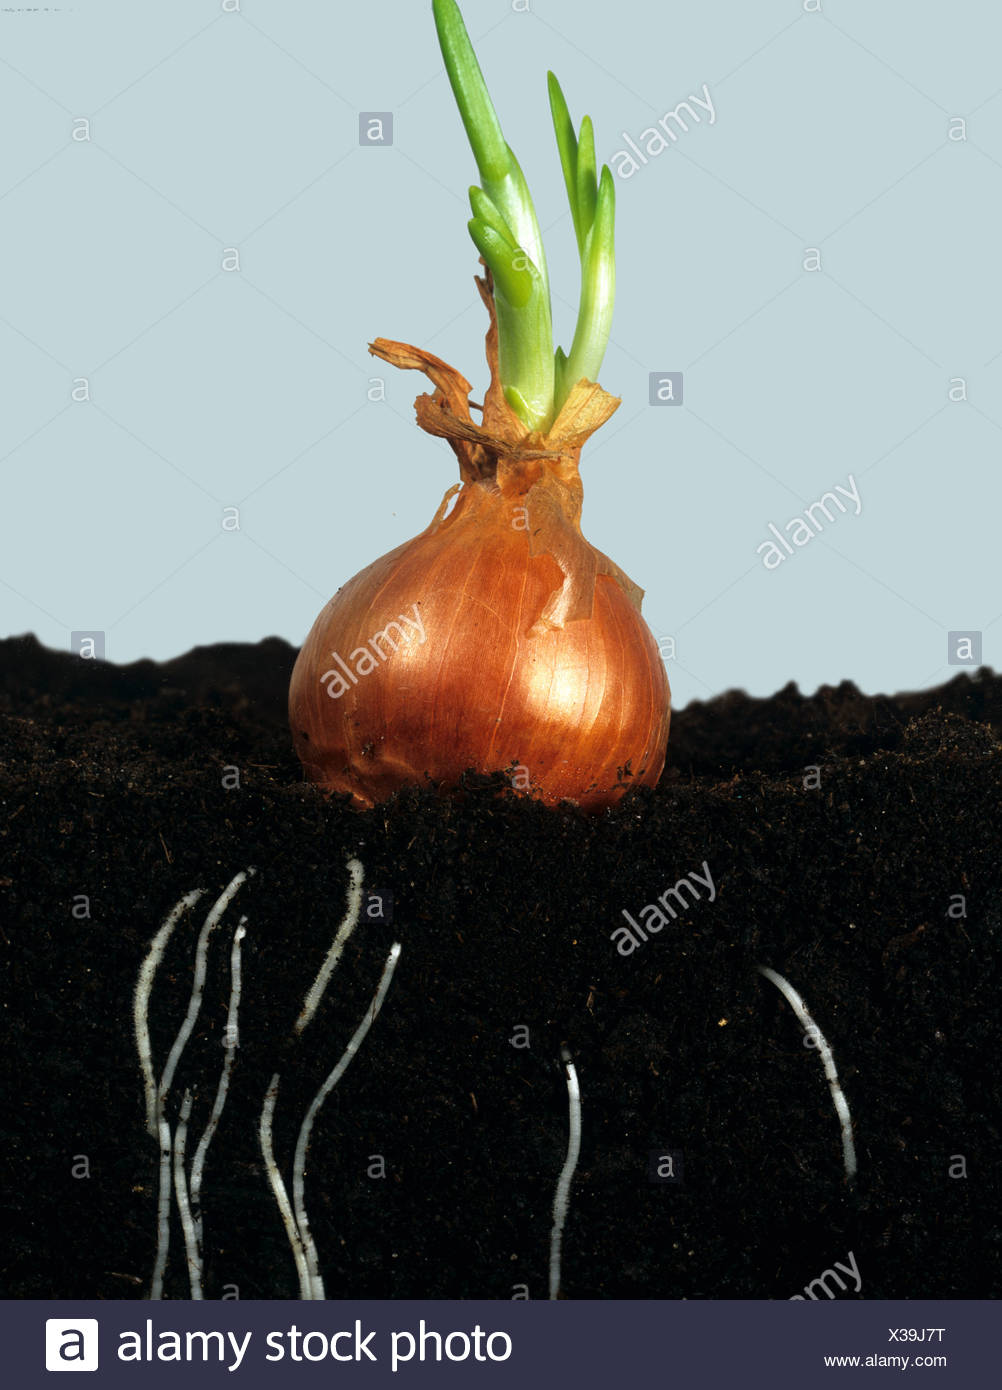 Onion bulb beginning to shoot and develop roots in the soil - Stock Image